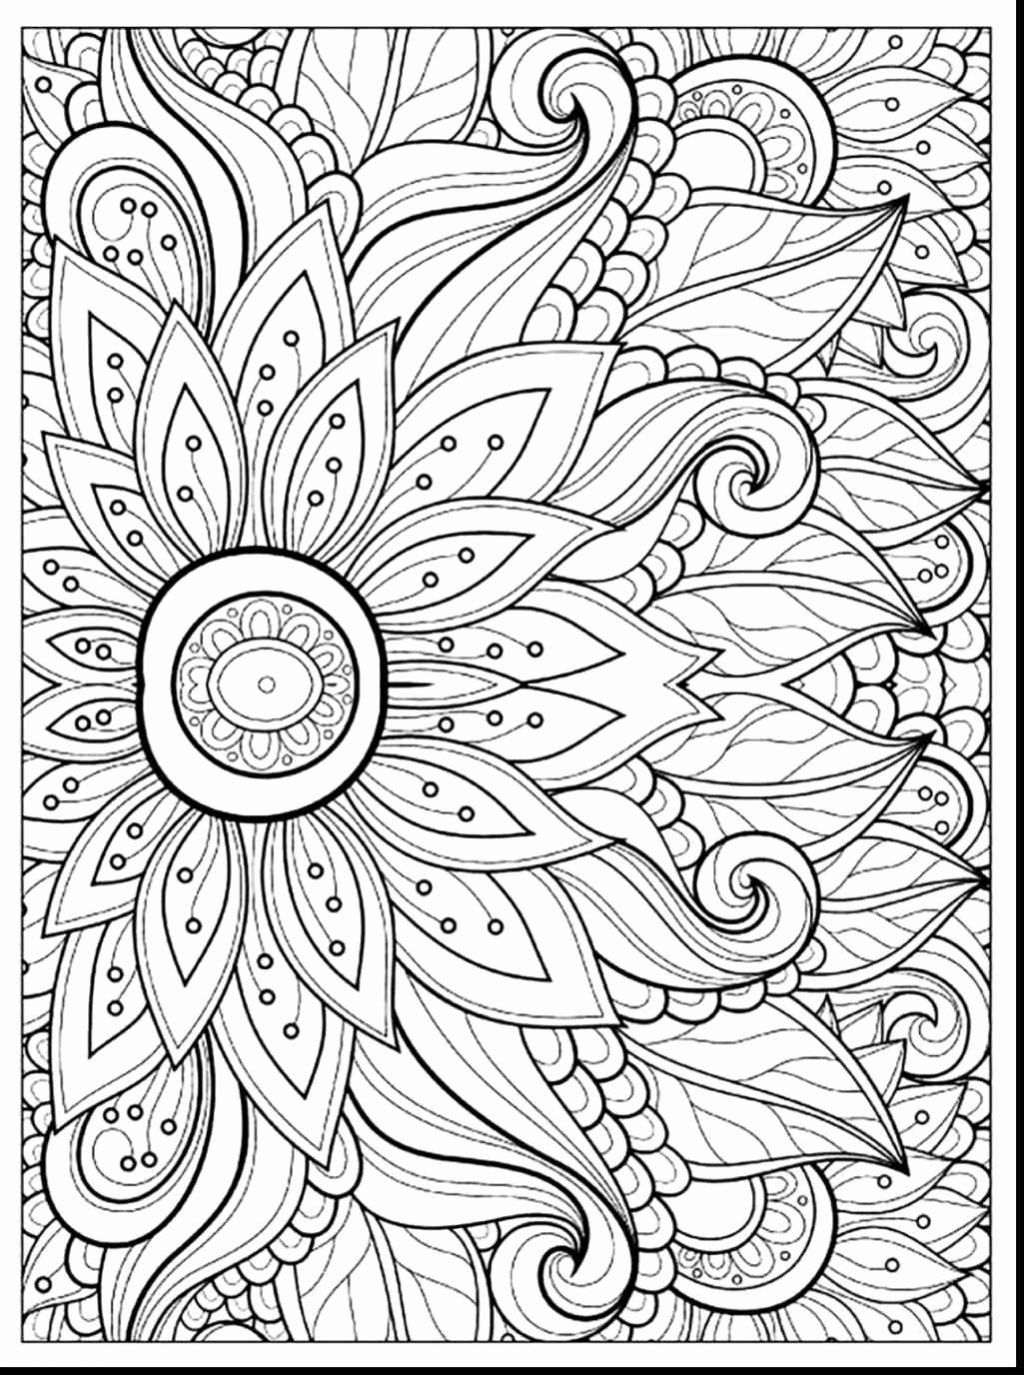 Coloring Pages Color By Number Hard Elegant Coloring Pages For Teenagers Difficu Detailed Coloring Pages Mandala Coloring Pages Printable Flower Coloring Pages